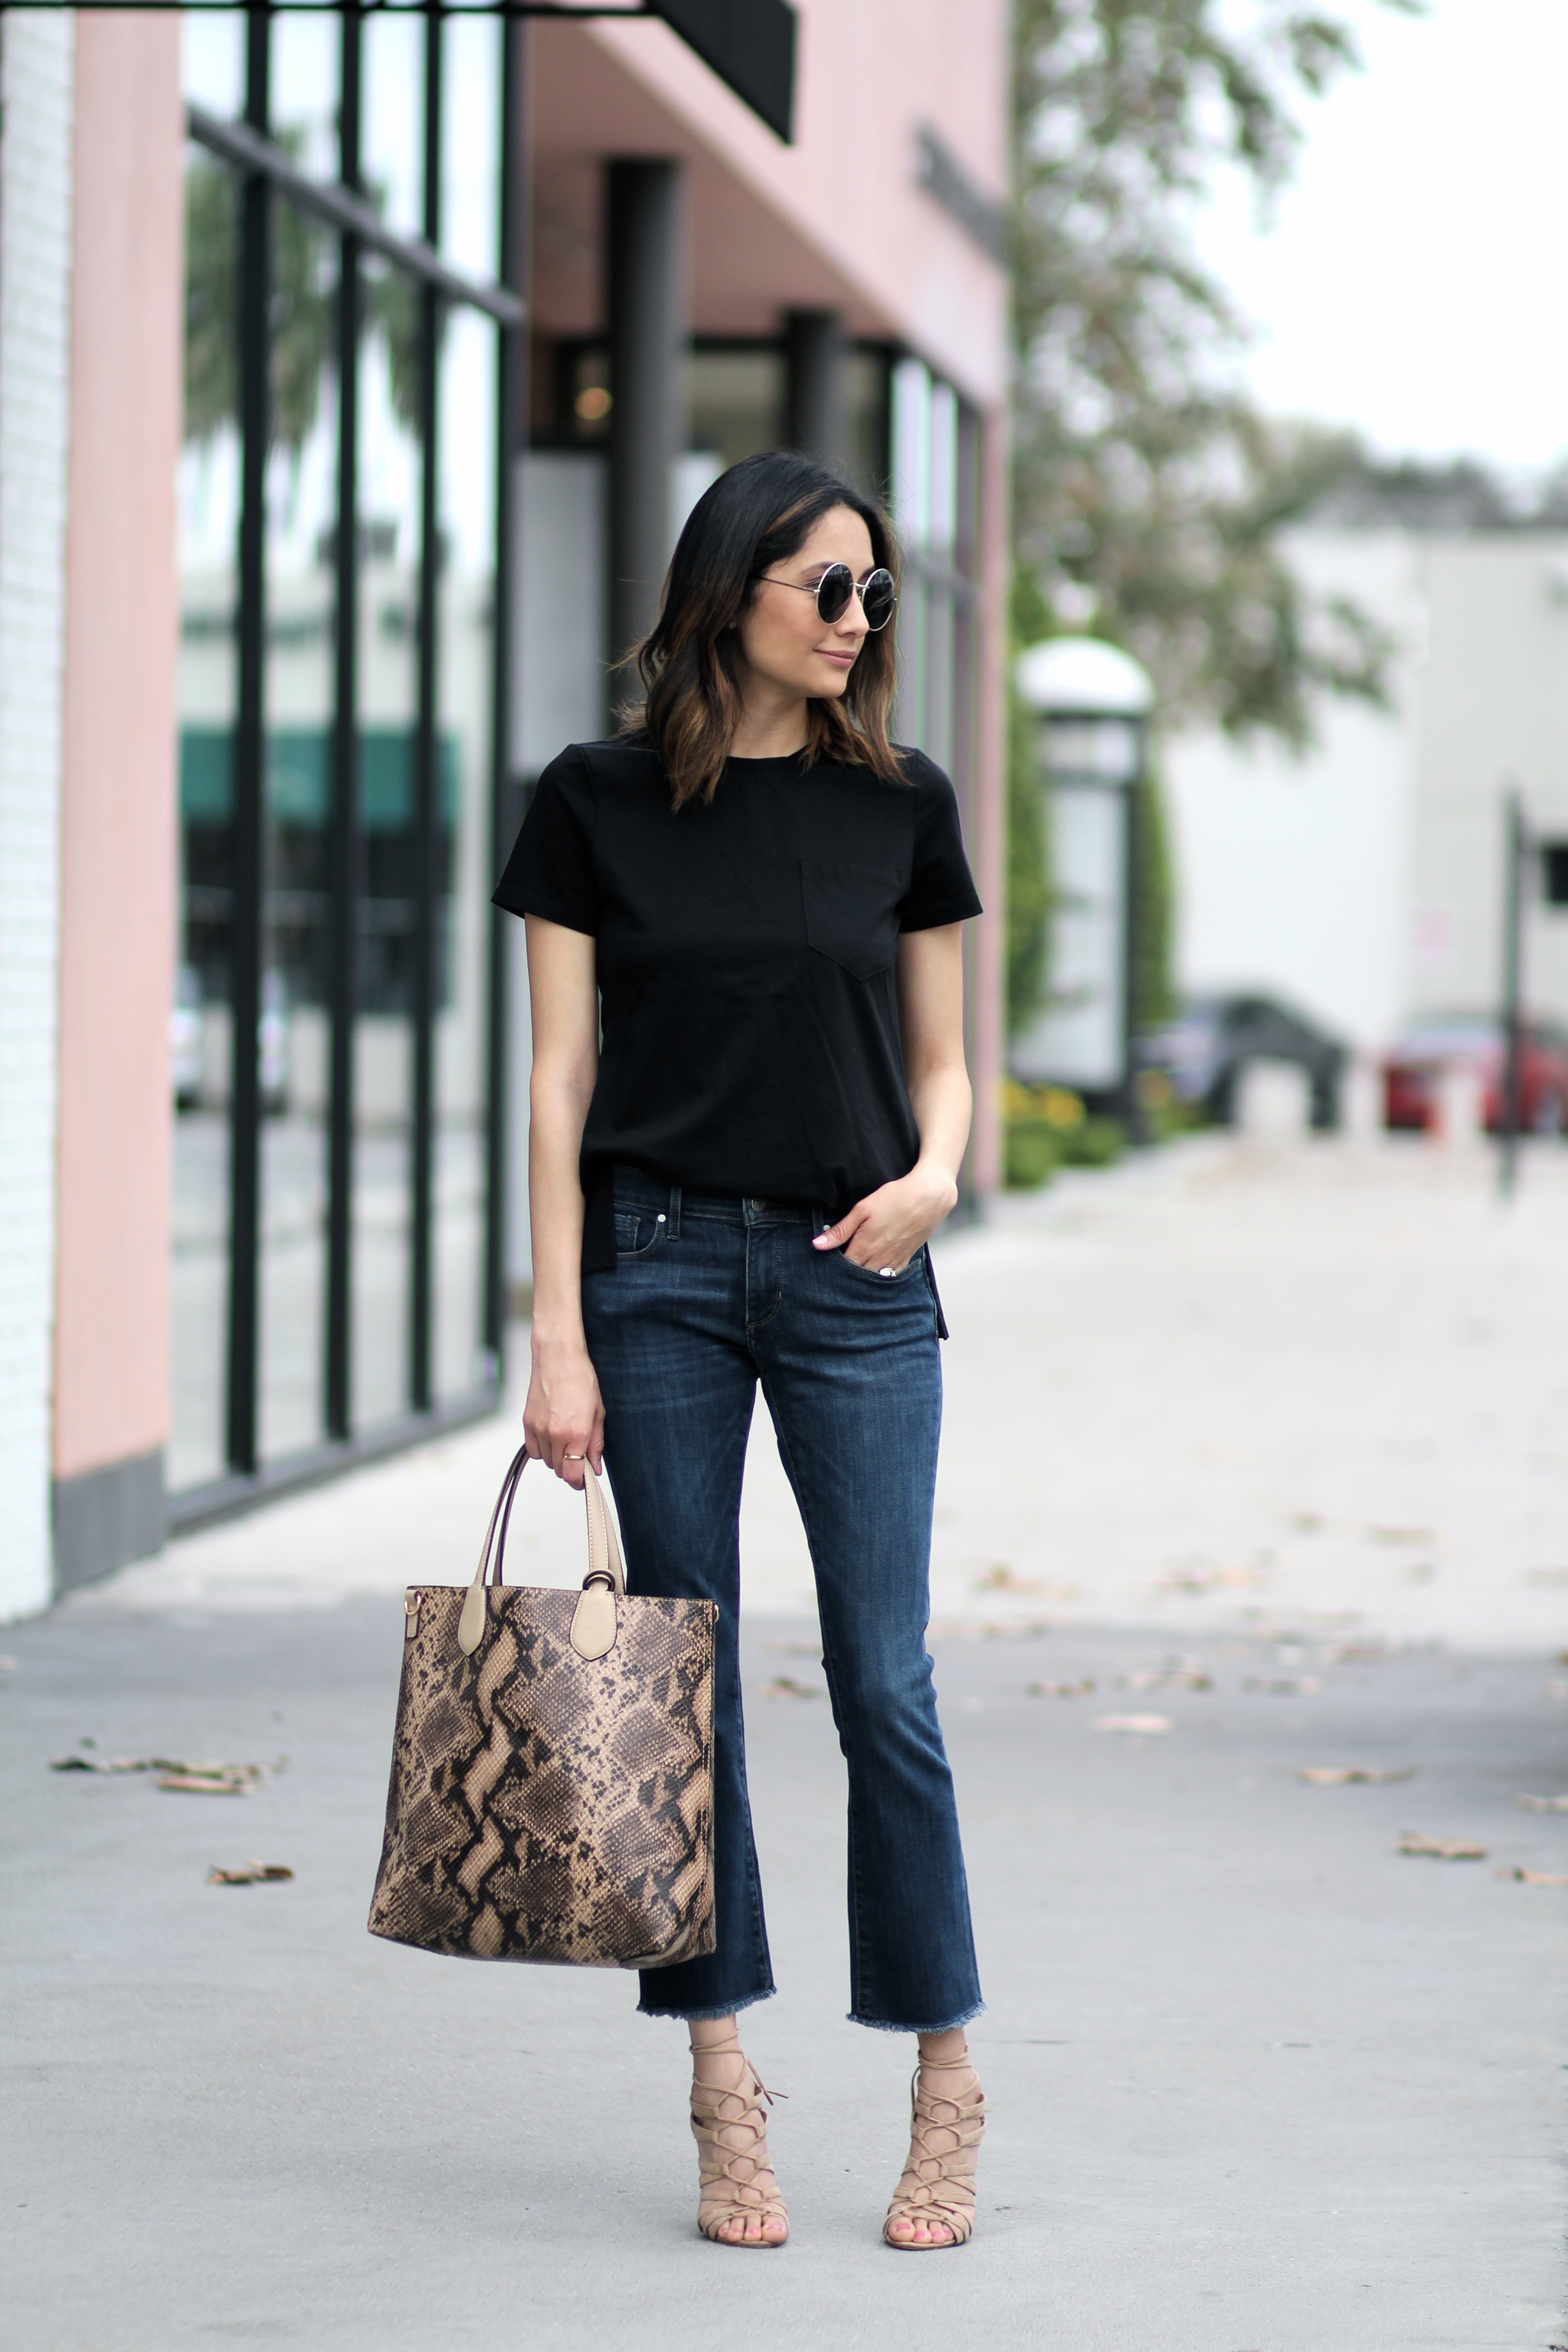 Lifestyle blogger Lilly Beltran of Daily Caving wearing flare jeans and a black basic tee